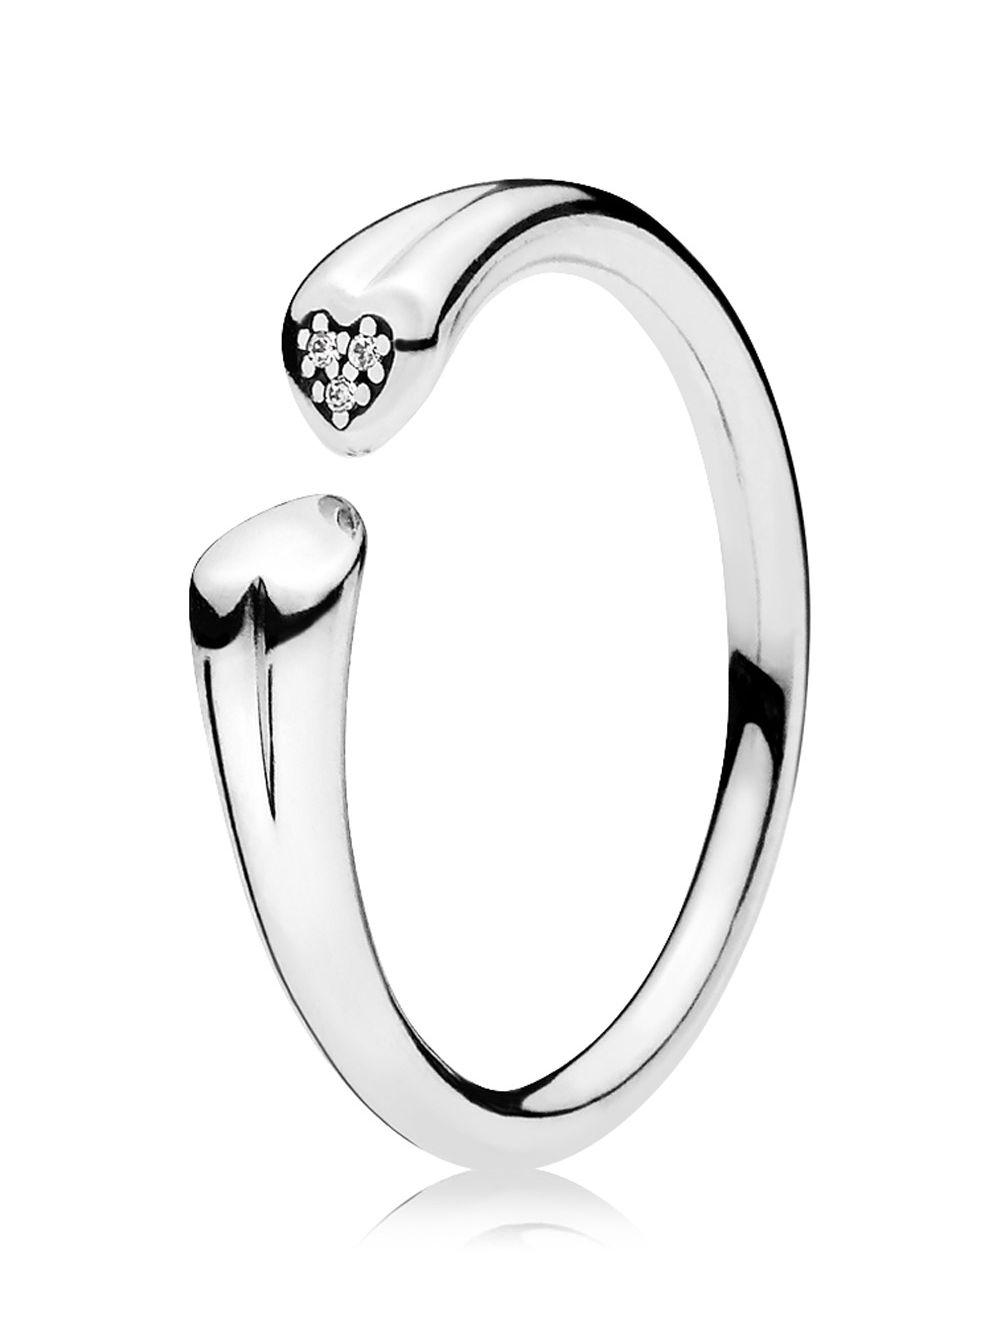 Pandora 196572Cz Ladies Ring Two Hearts Pertaining To Most Recently Released Pandora Logo & Hearts Rings (View 8 of 25)